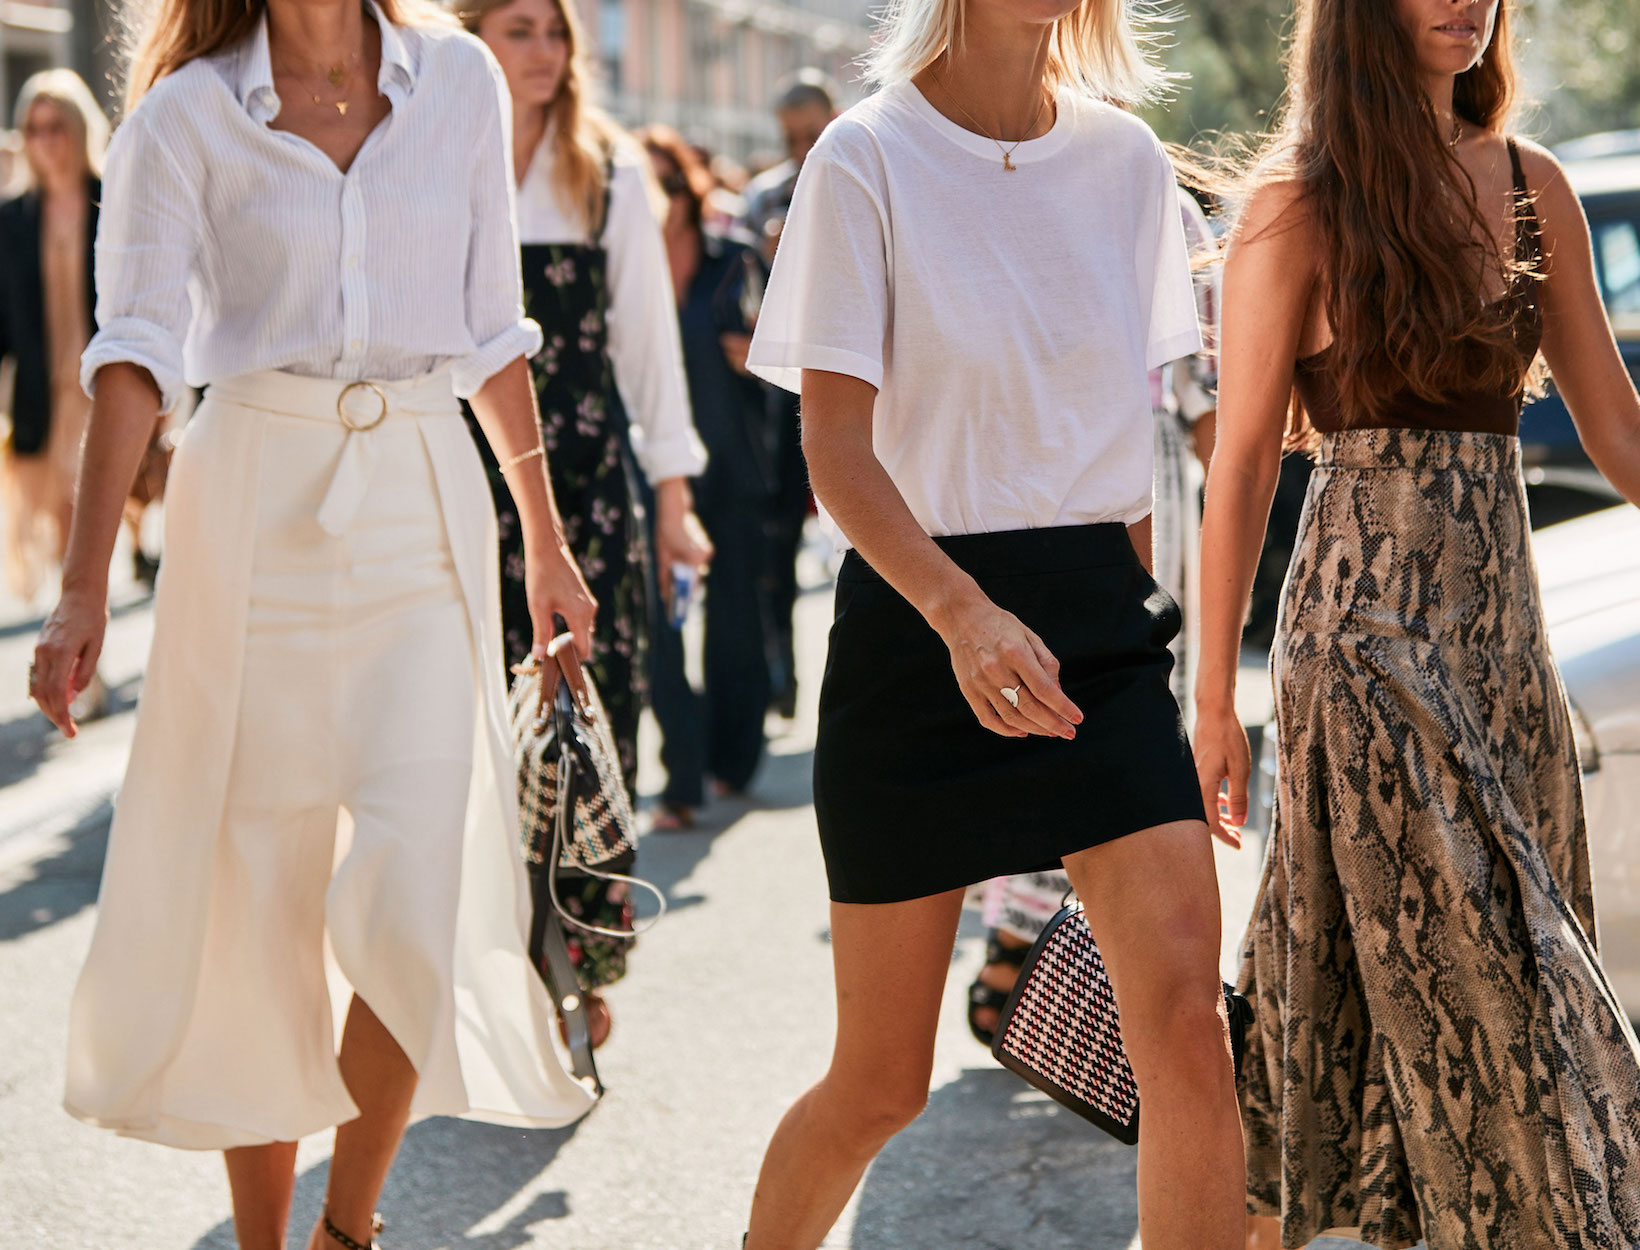 The goop Summer Skirt Roundup